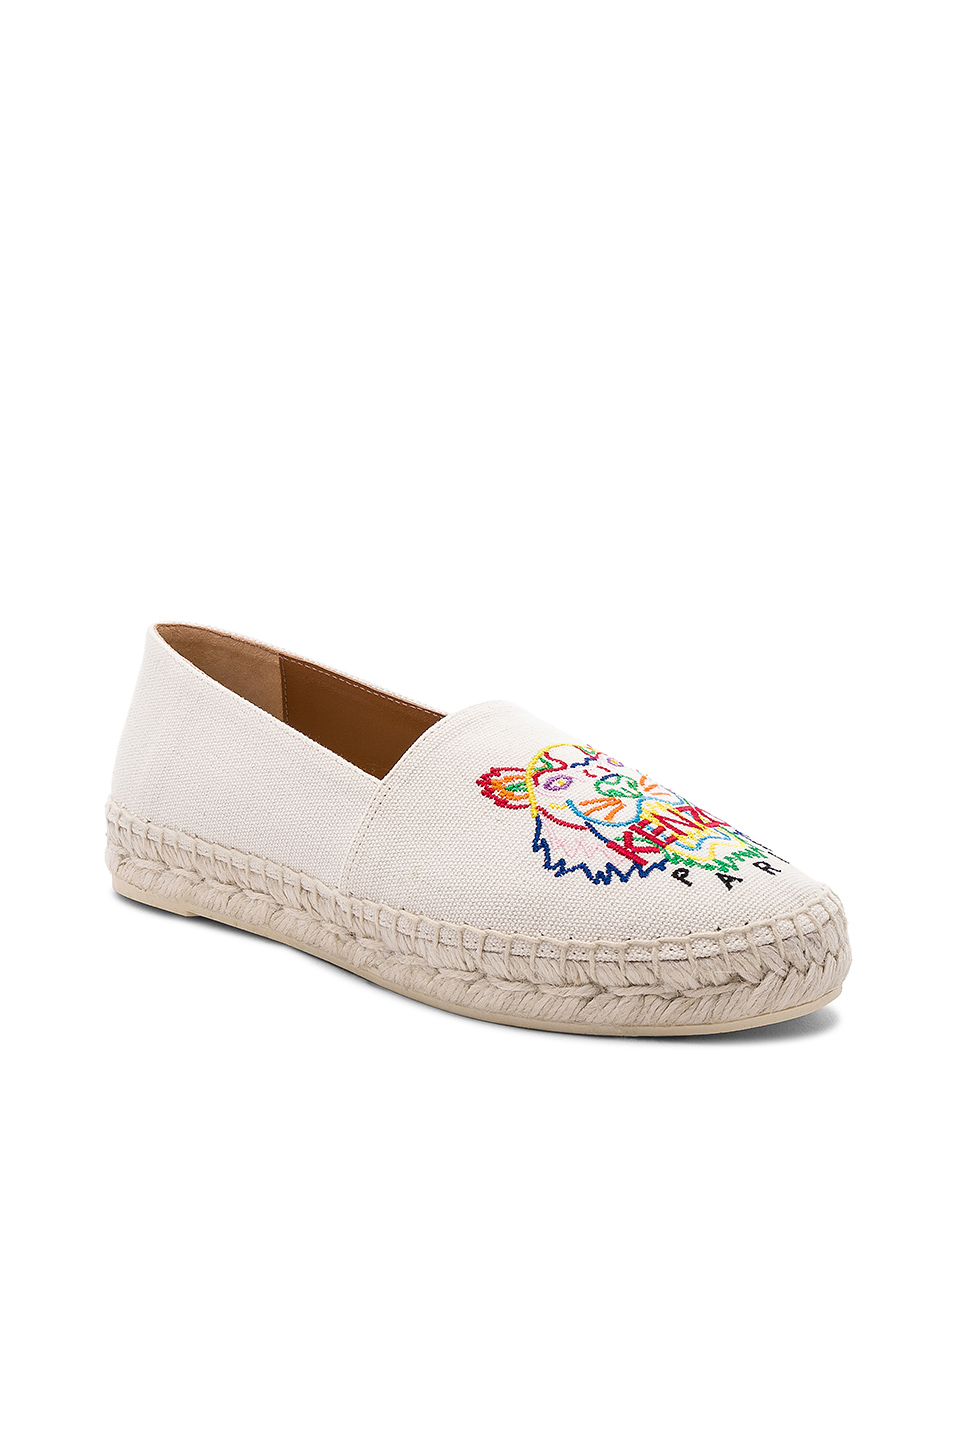 2ba4f8b6ae54 Buy Original Kenzo Tiger Espadrille at Indonesia   BOBOBOBO